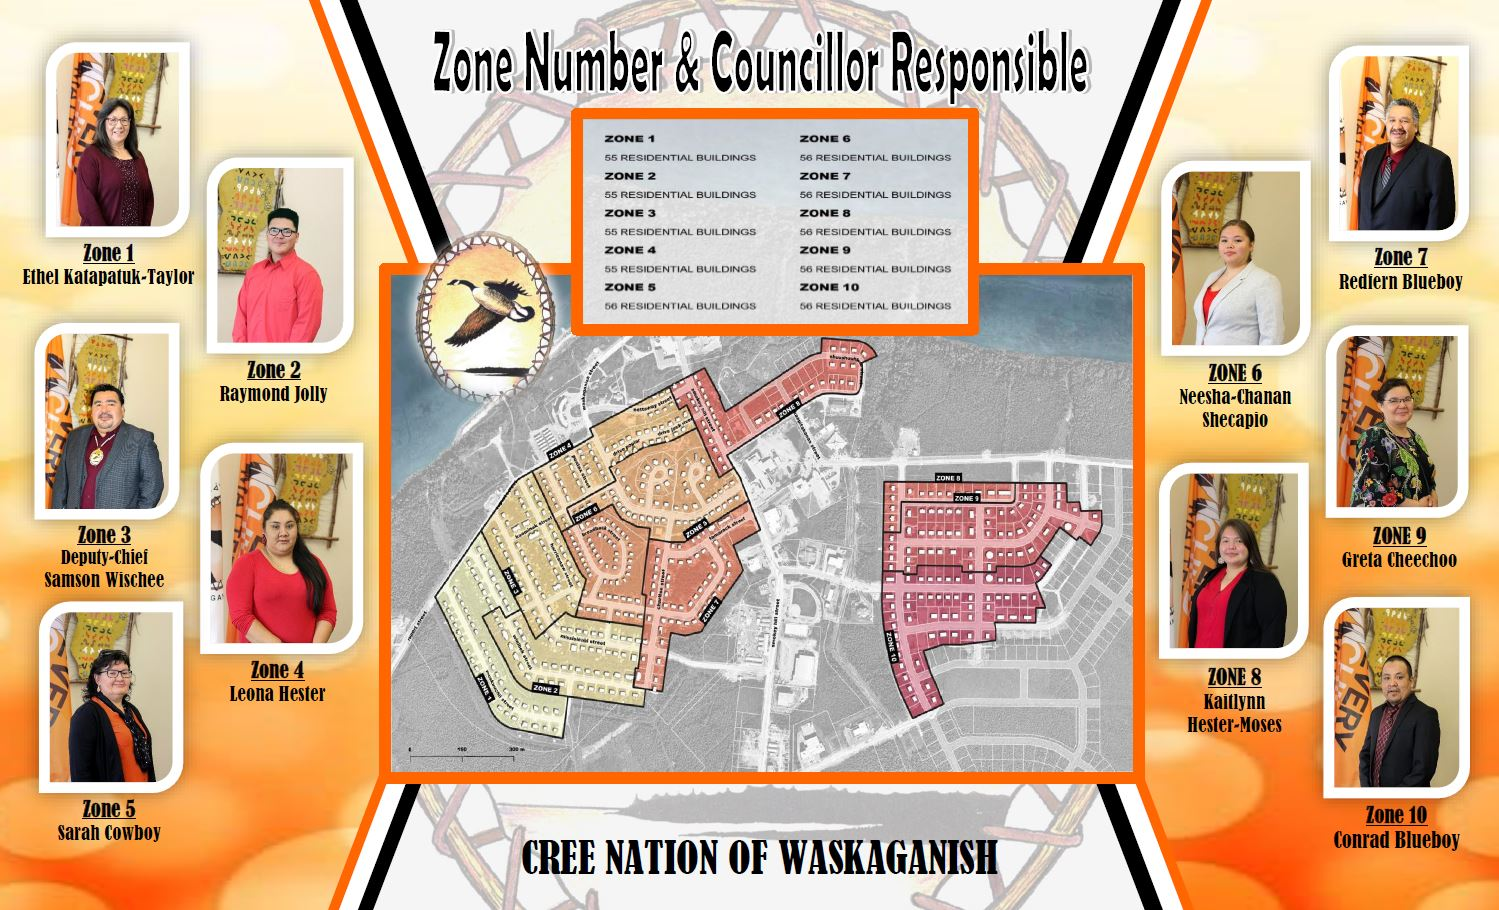 Zoning Map for Council